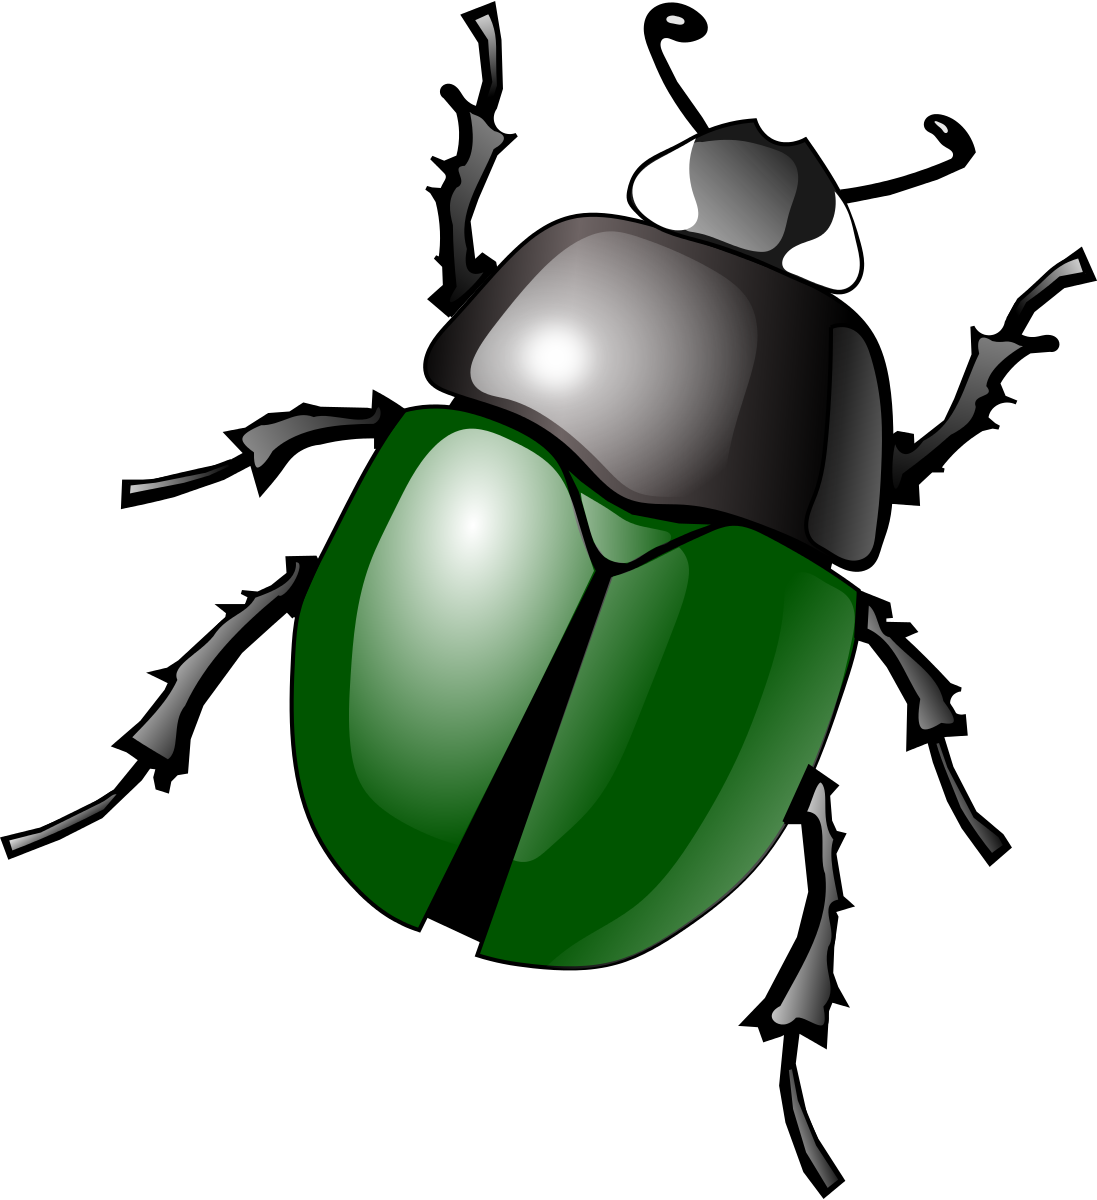 Beetle cliparts-Beetle cliparts-0